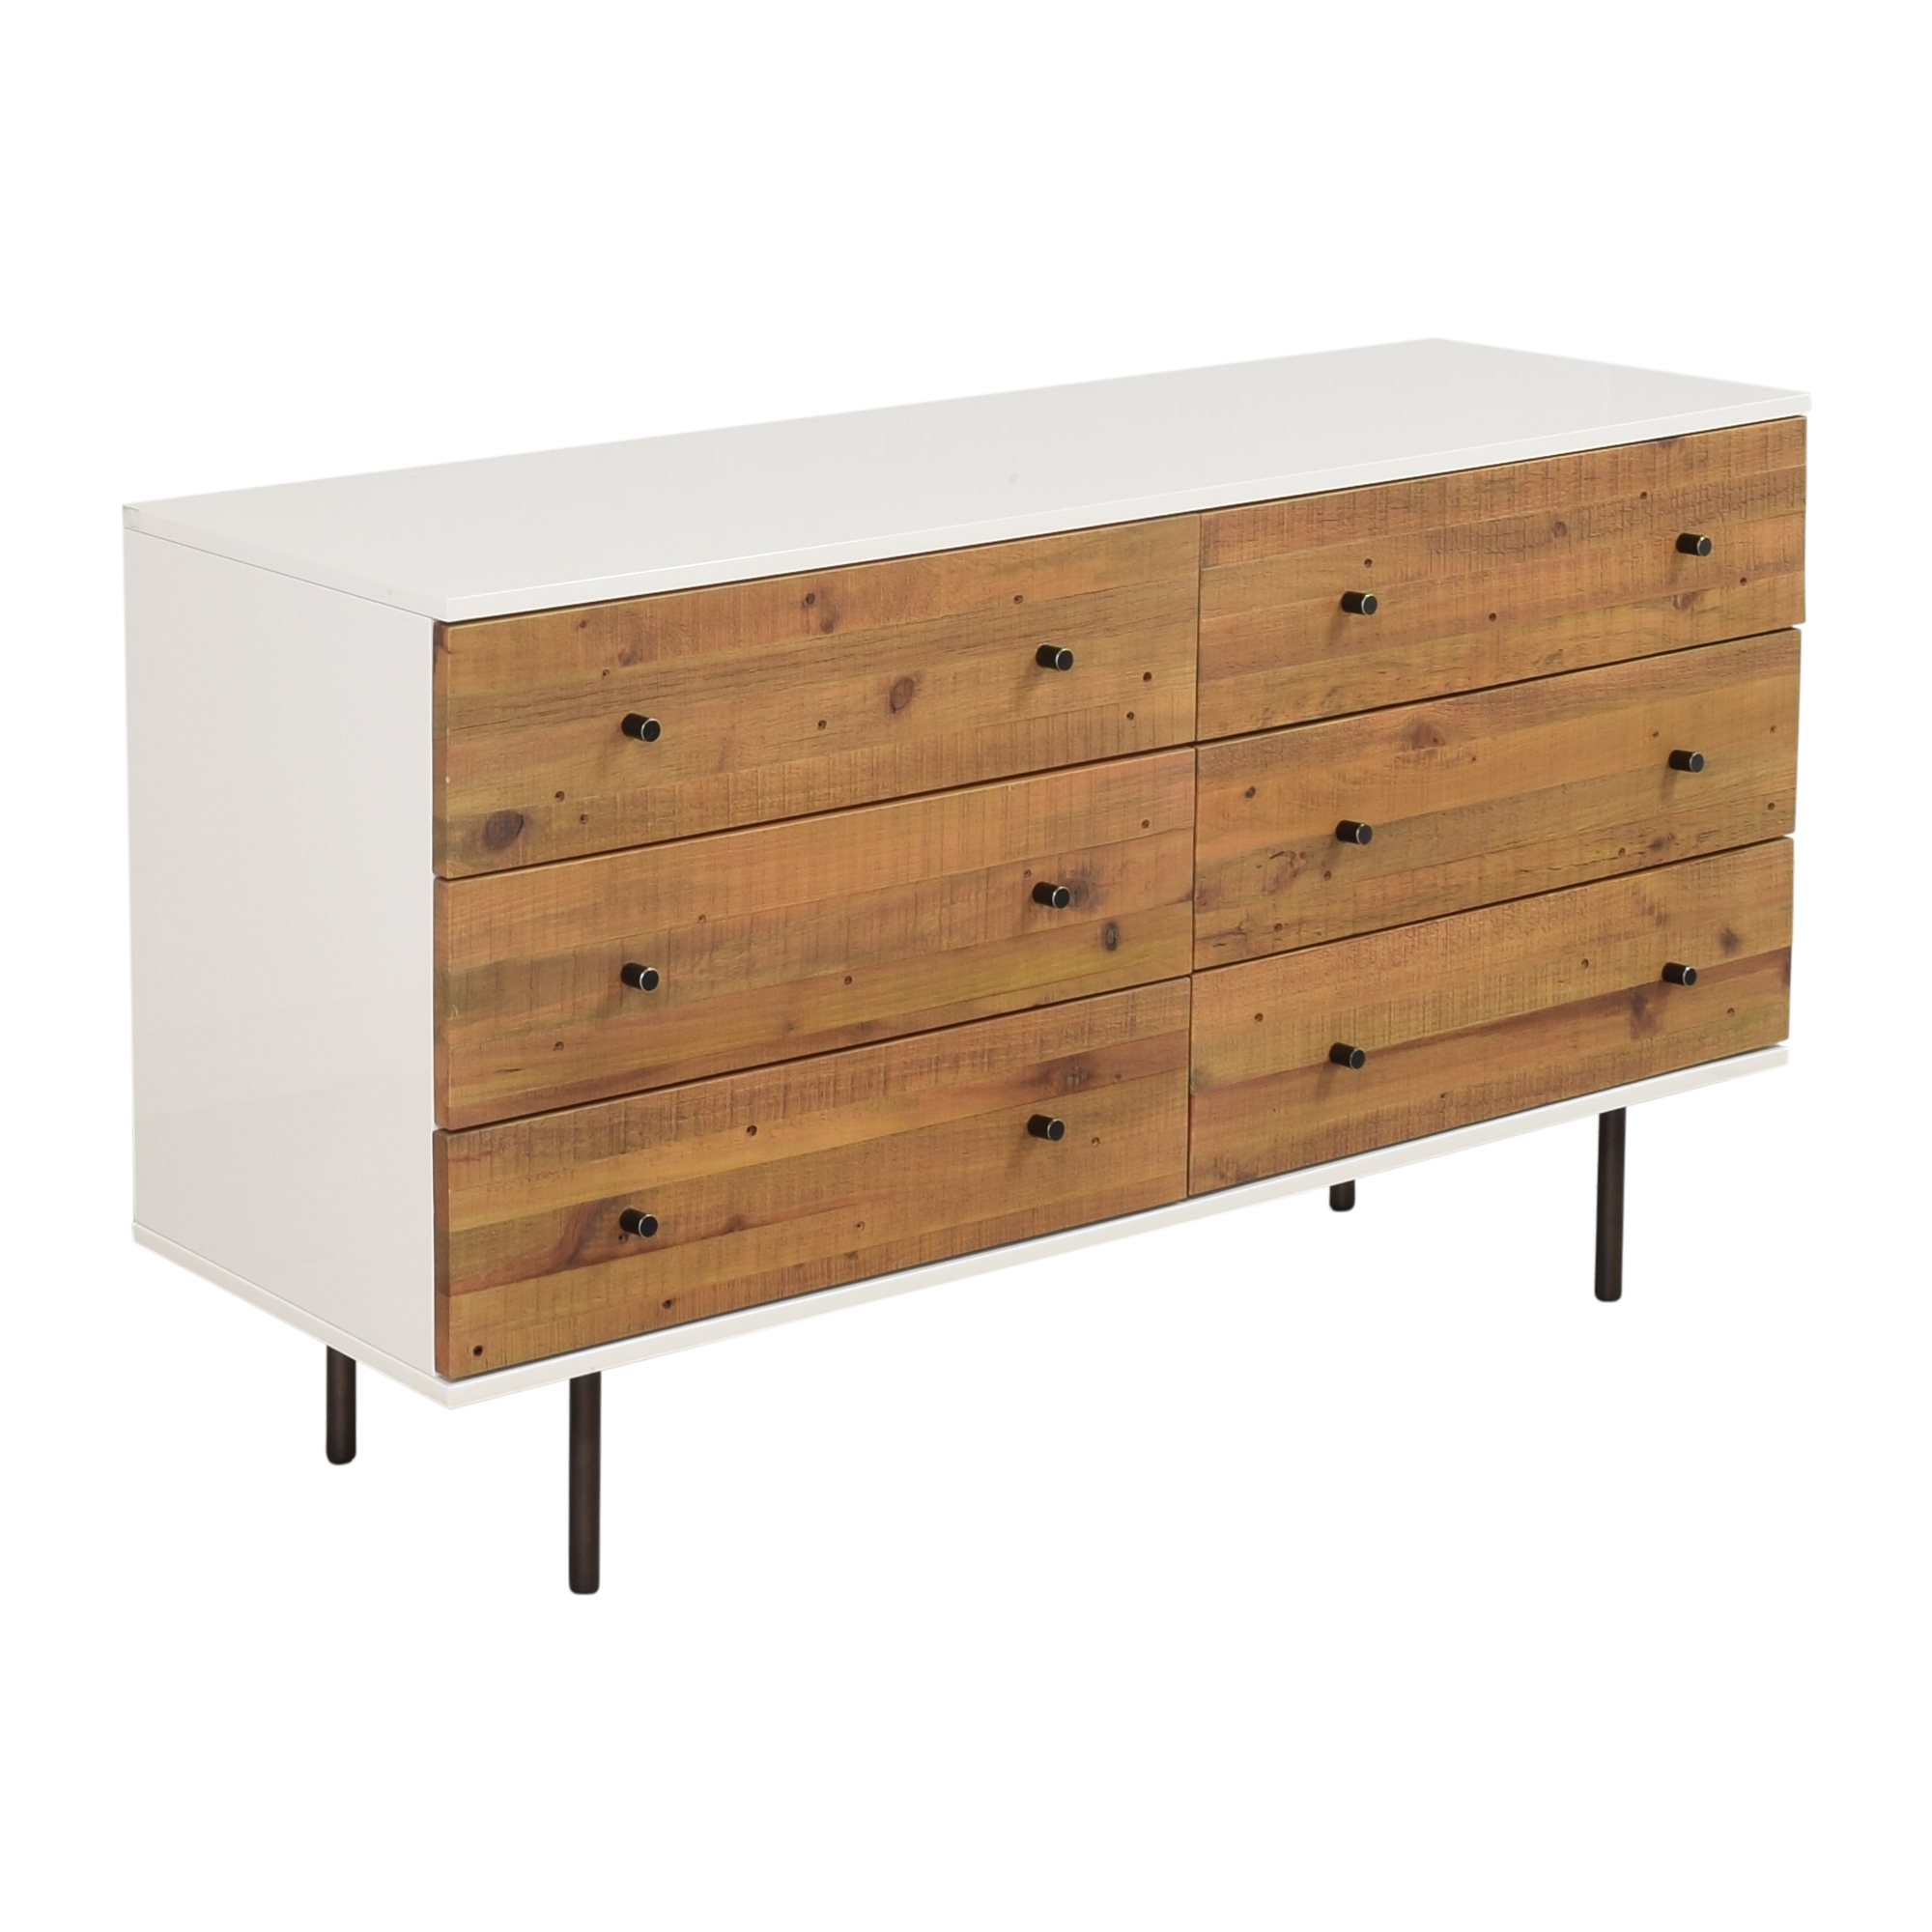 West Elm West Elm Emmerson Reclaimed Six Drawer Dresser Dressers